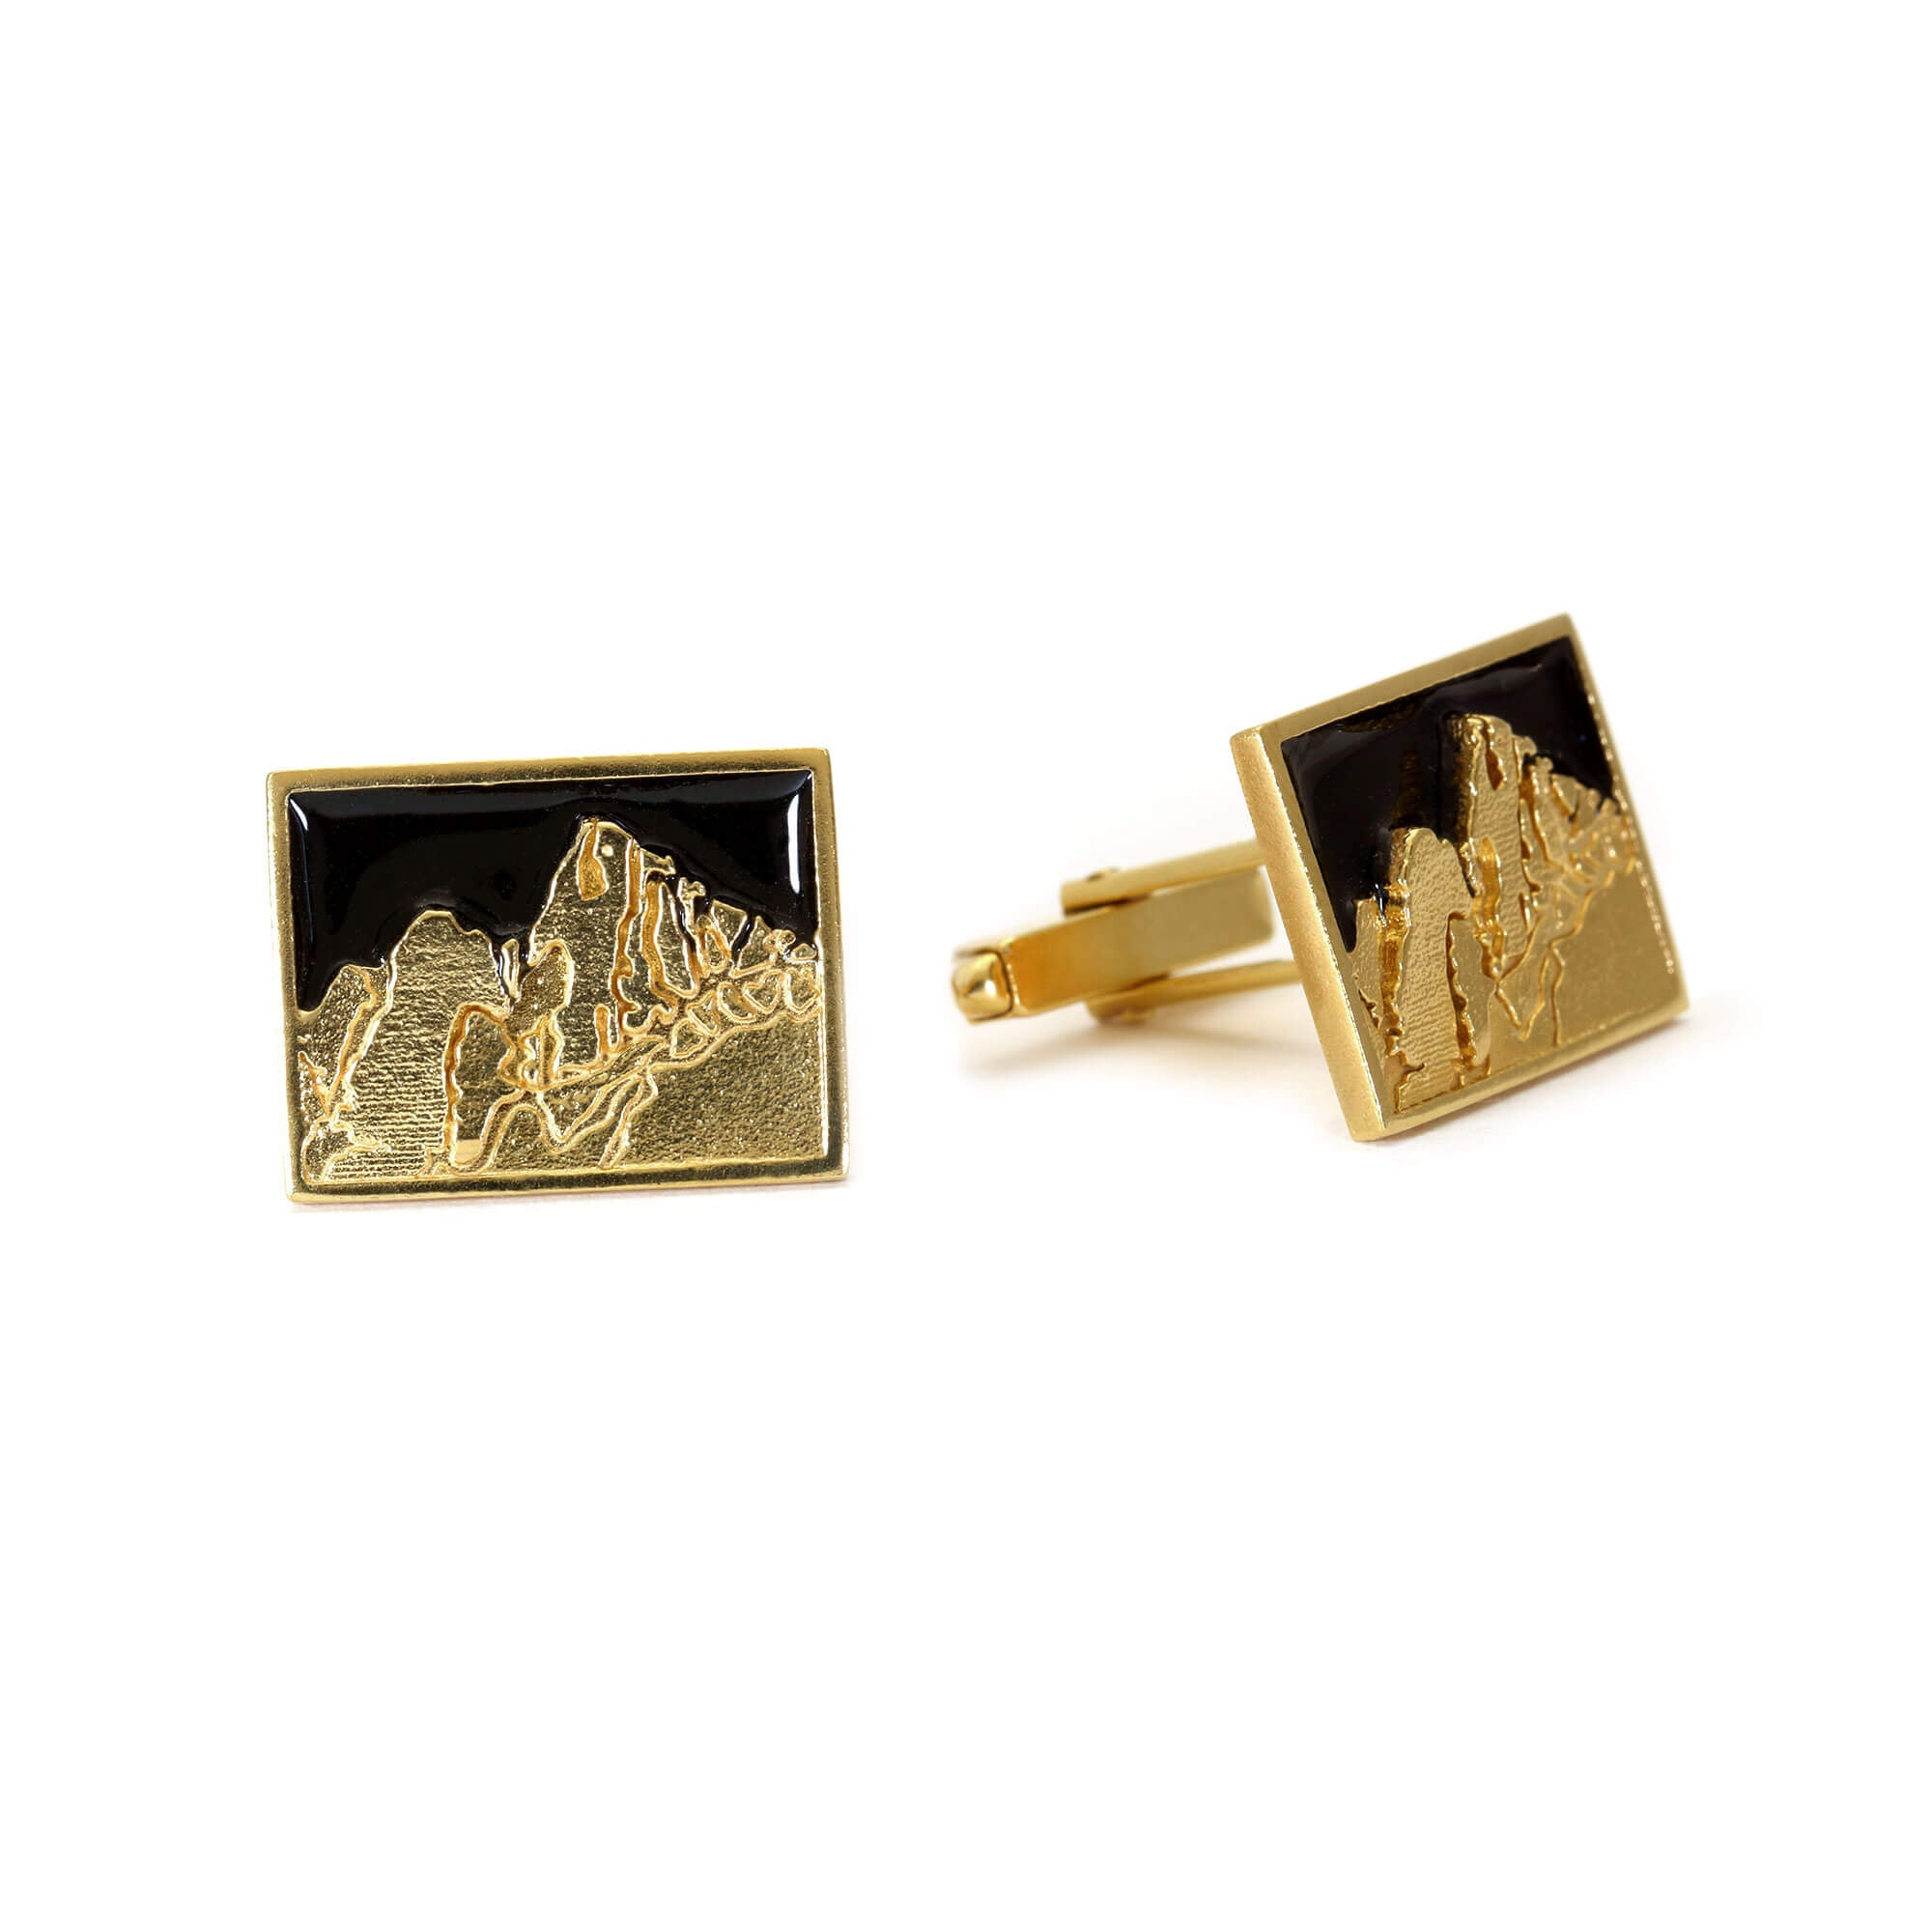 A pair of Cuillin Ridge cufflink in gold and black enamel